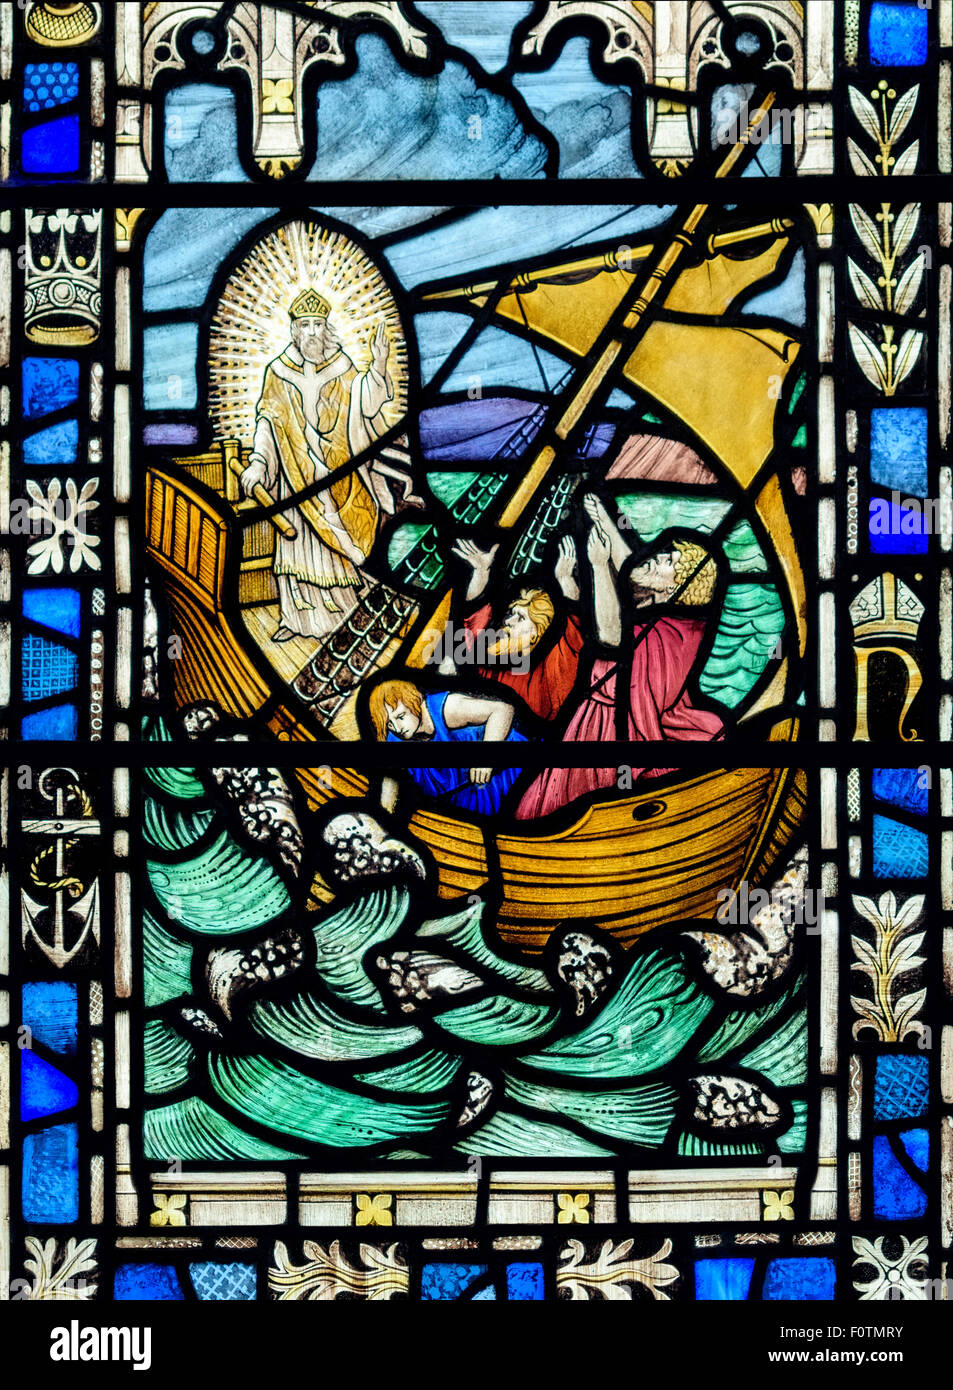 Stained glass window depicting Jesus calming the storm, St. Andrew's Church, Dent, Yorkshire Dales National - Stock Image